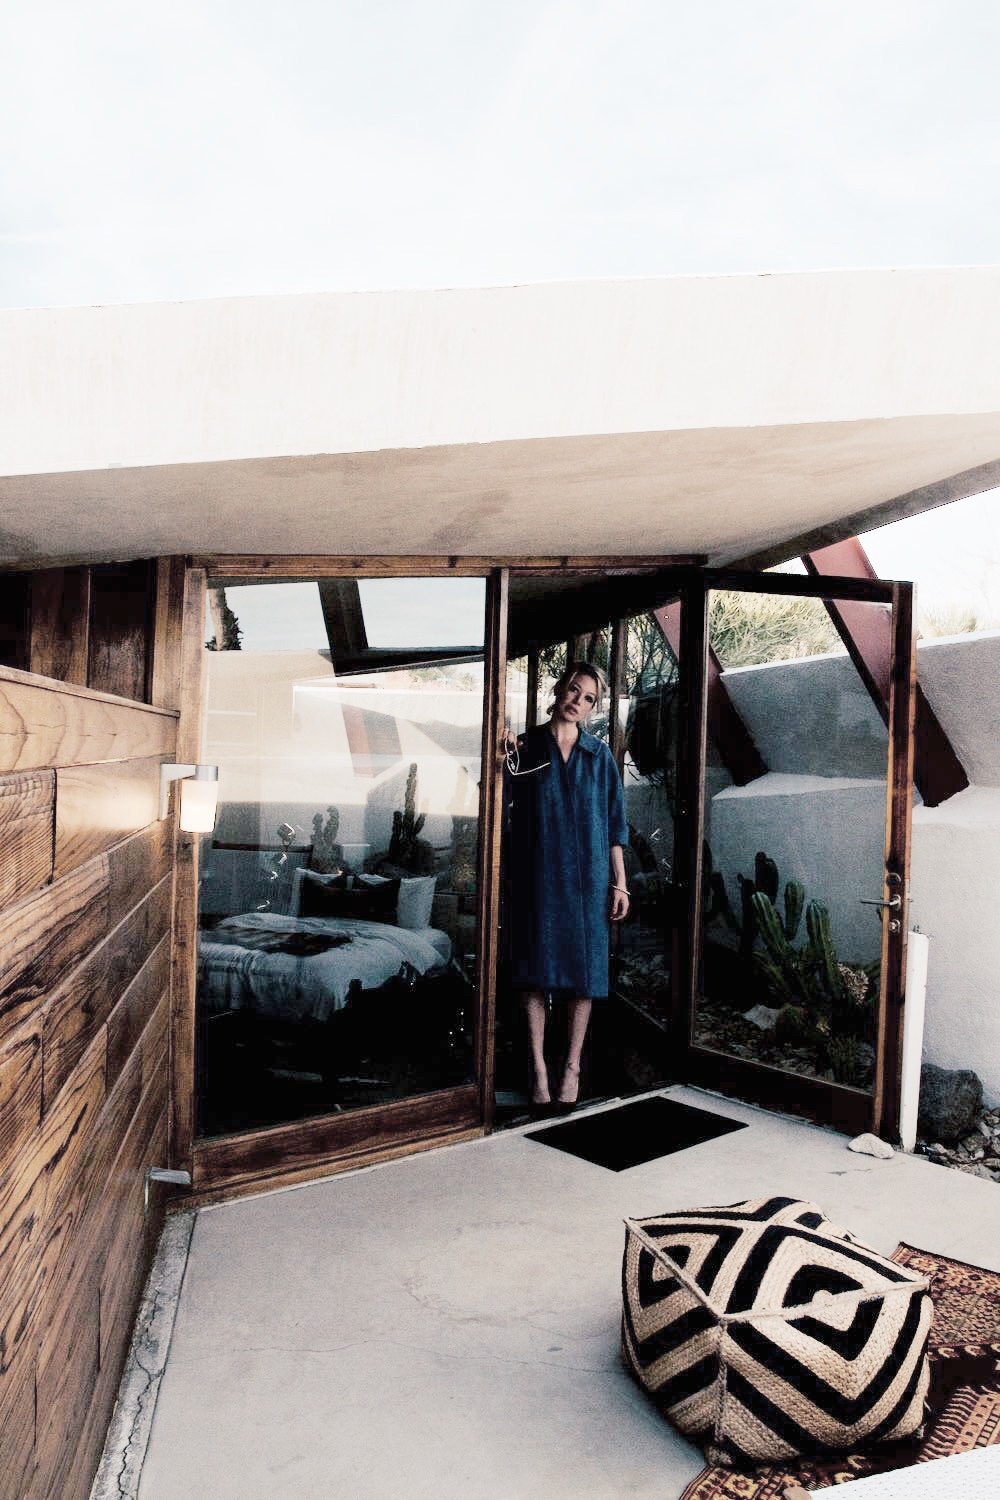 Midcentury modern architecture in Desert Palm Springs, California